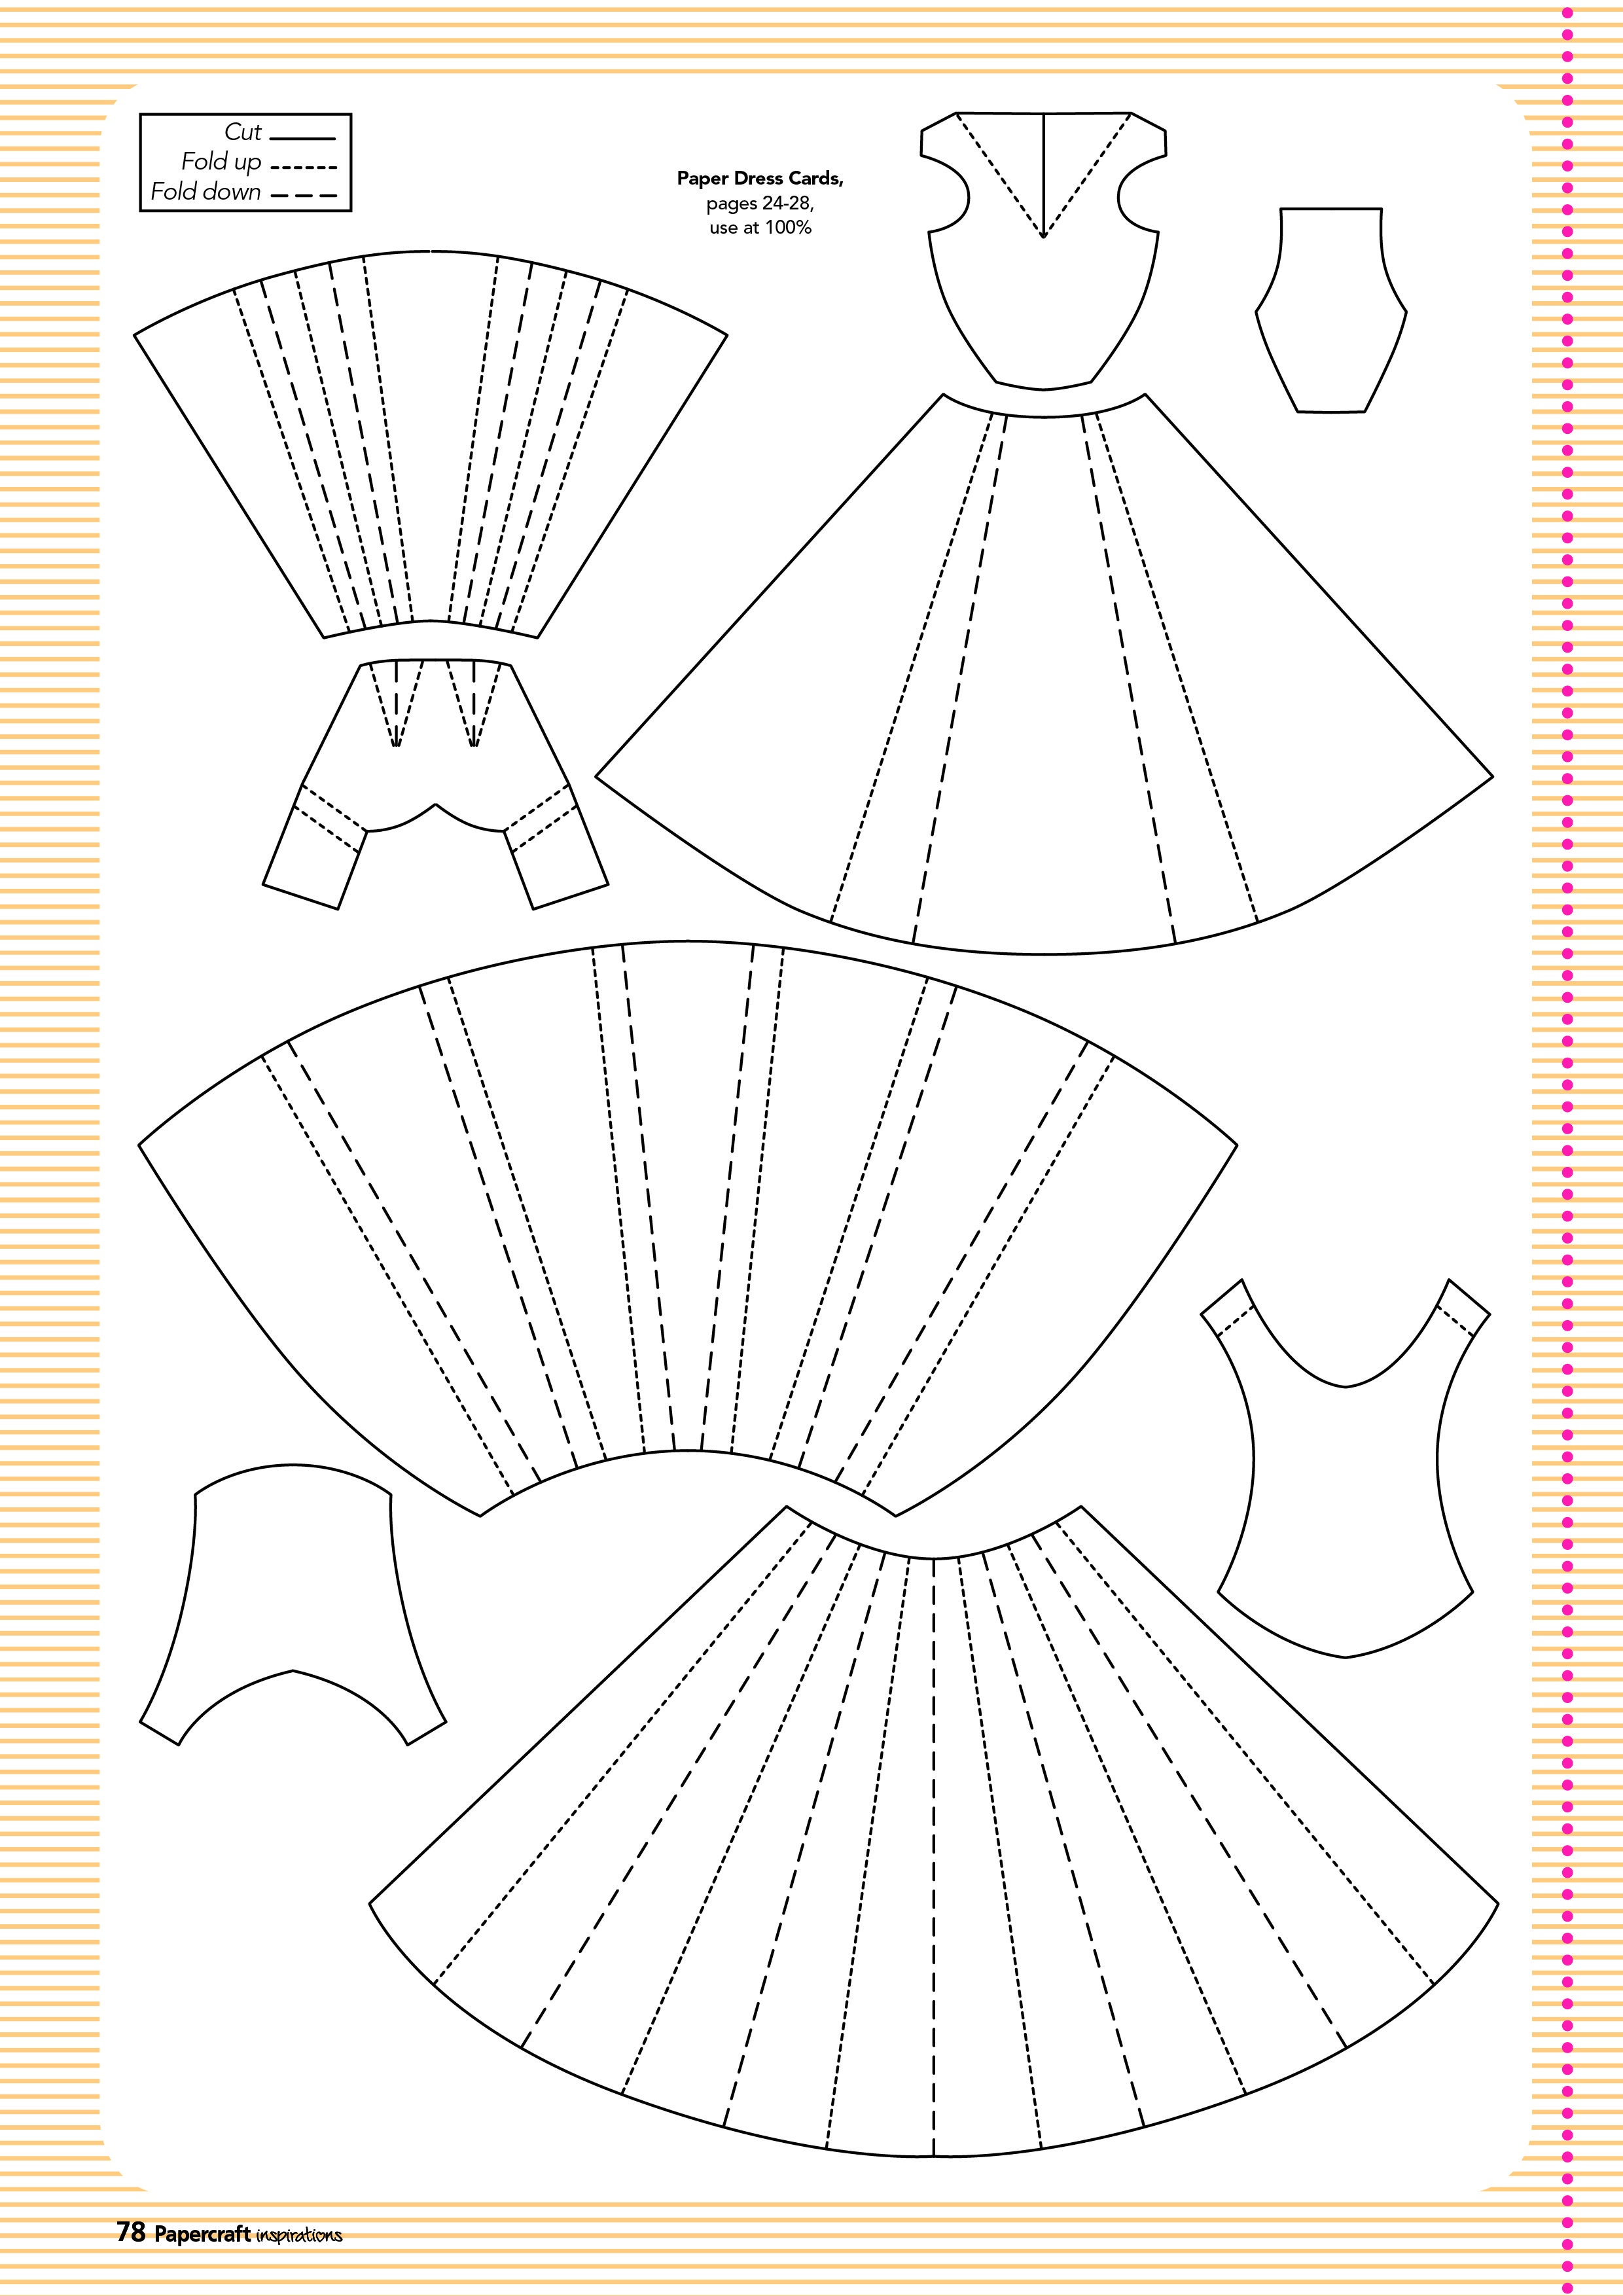 Free Templates From Papercraft Inspirations 129 | Card Design - Free Card Making Templates Printable